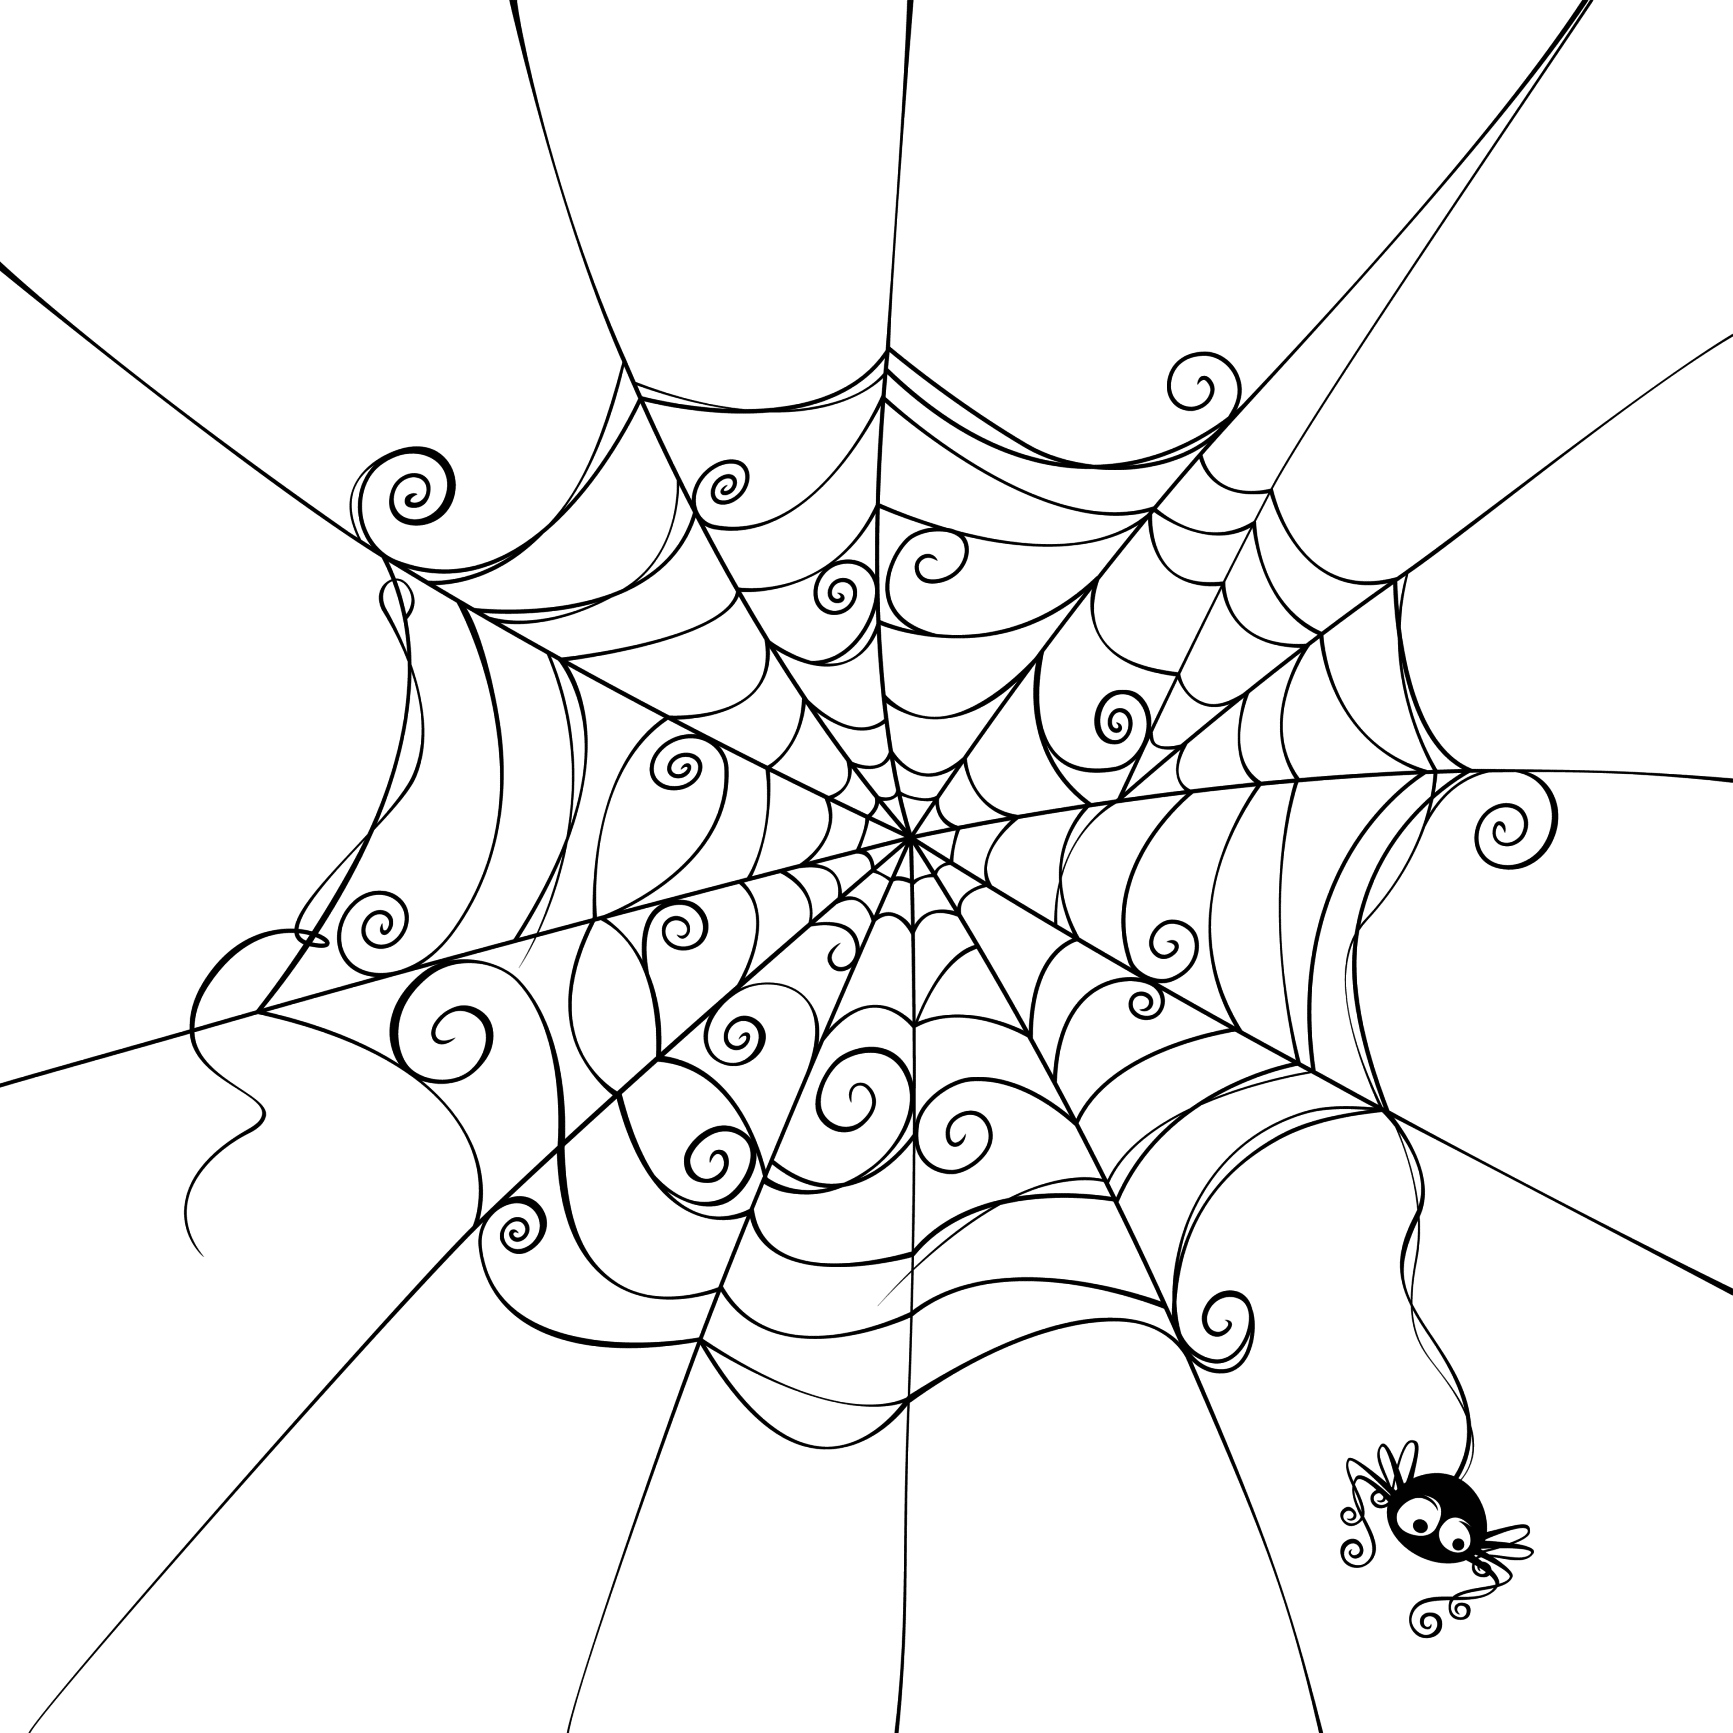 Drawn spider web cartoon Pencil sketch images pencil –